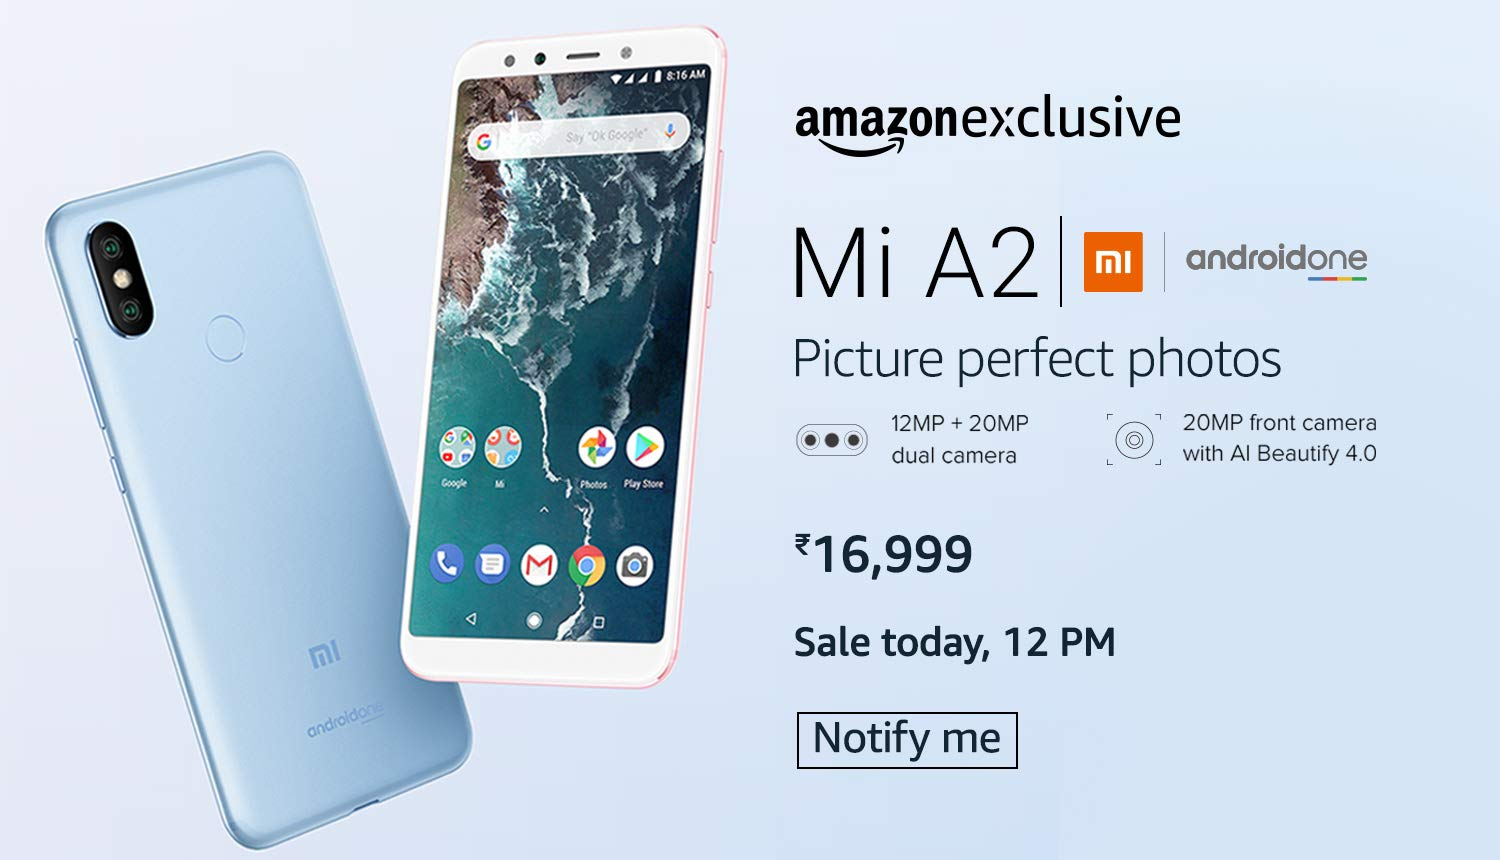 Amazon - Mi A2 Sale Today @ 12:00 PM